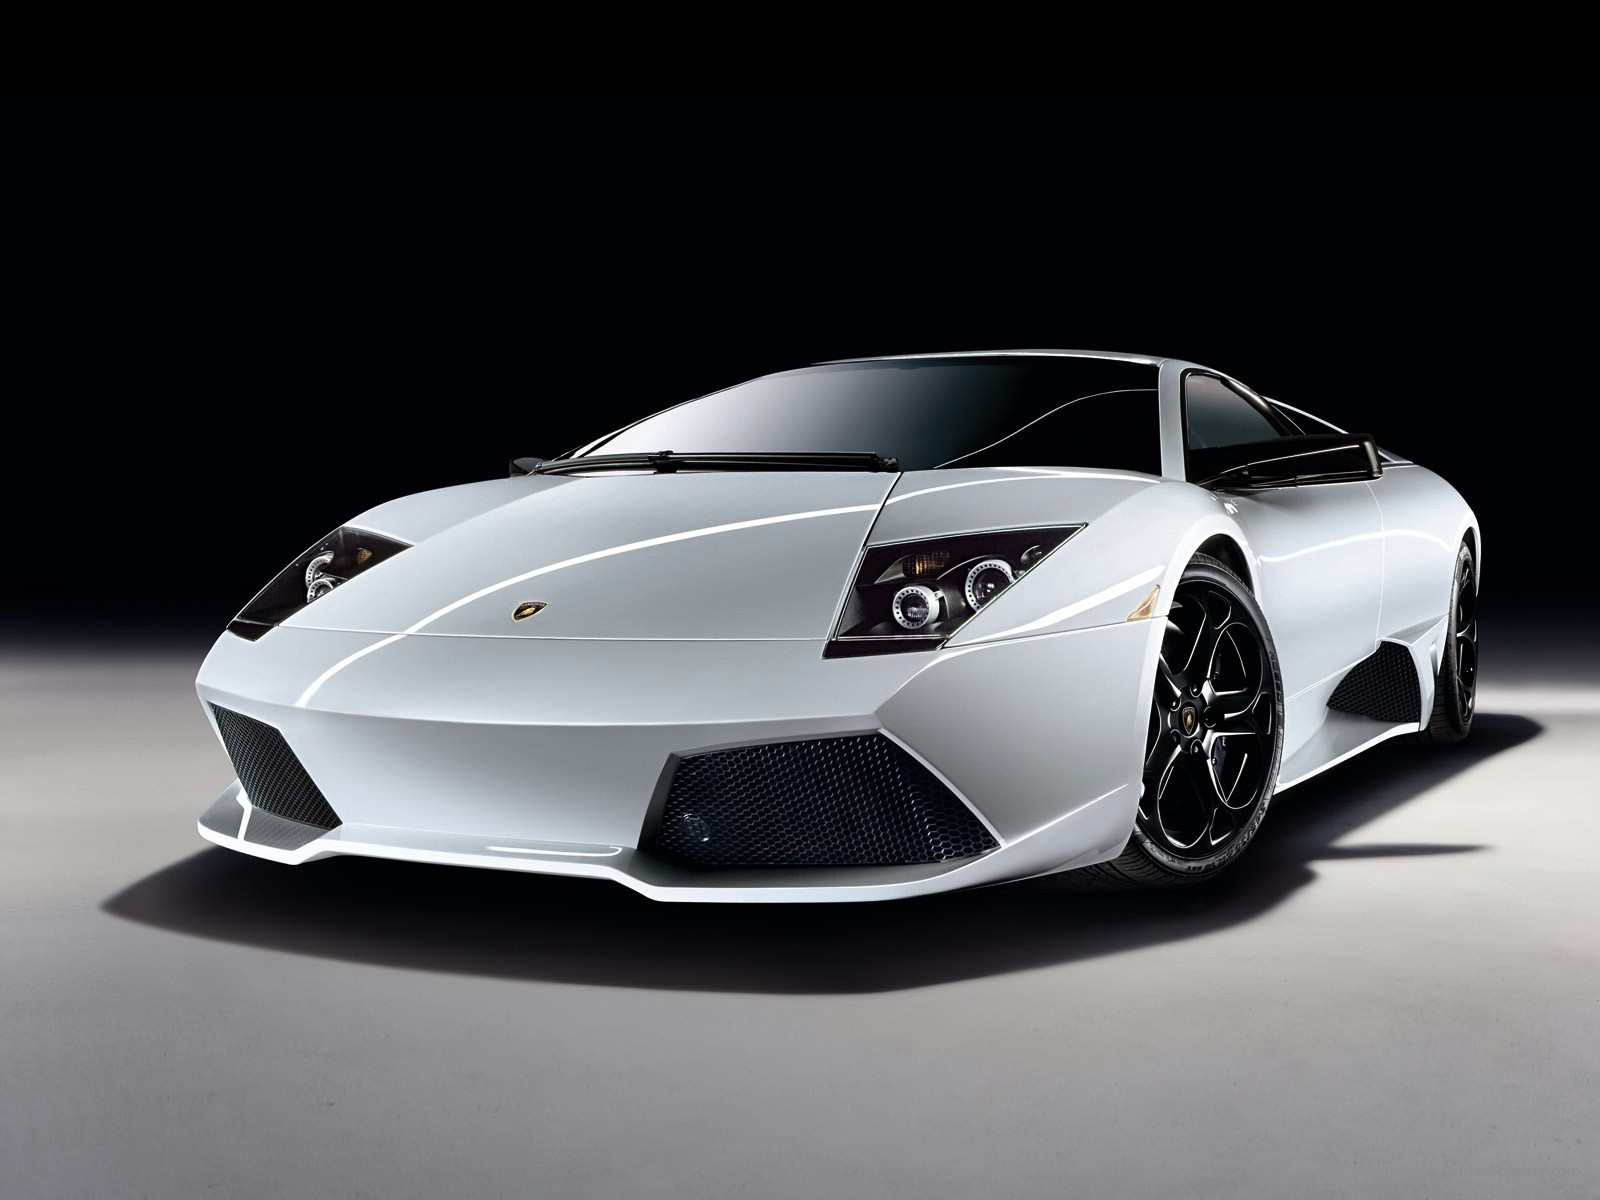 Lamborghini murcielago versace Wallpapers HD Wallpapers 1600x1200